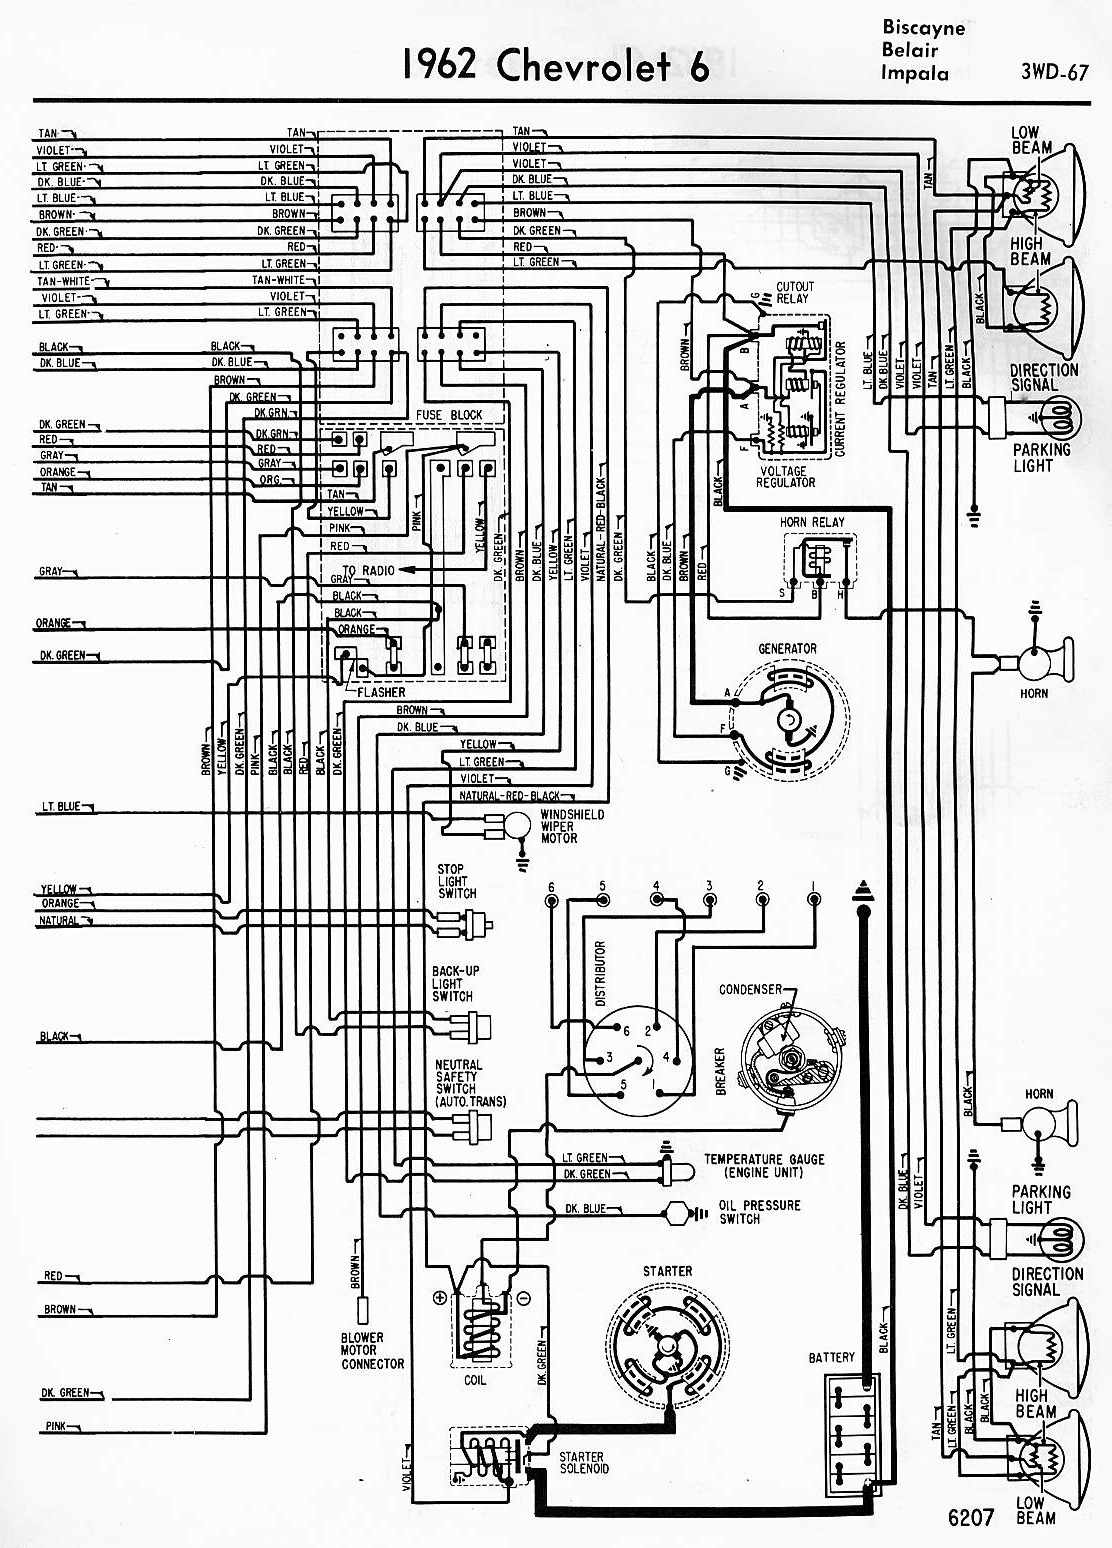 Wiper Motor Wiring Diagram Chevrolet